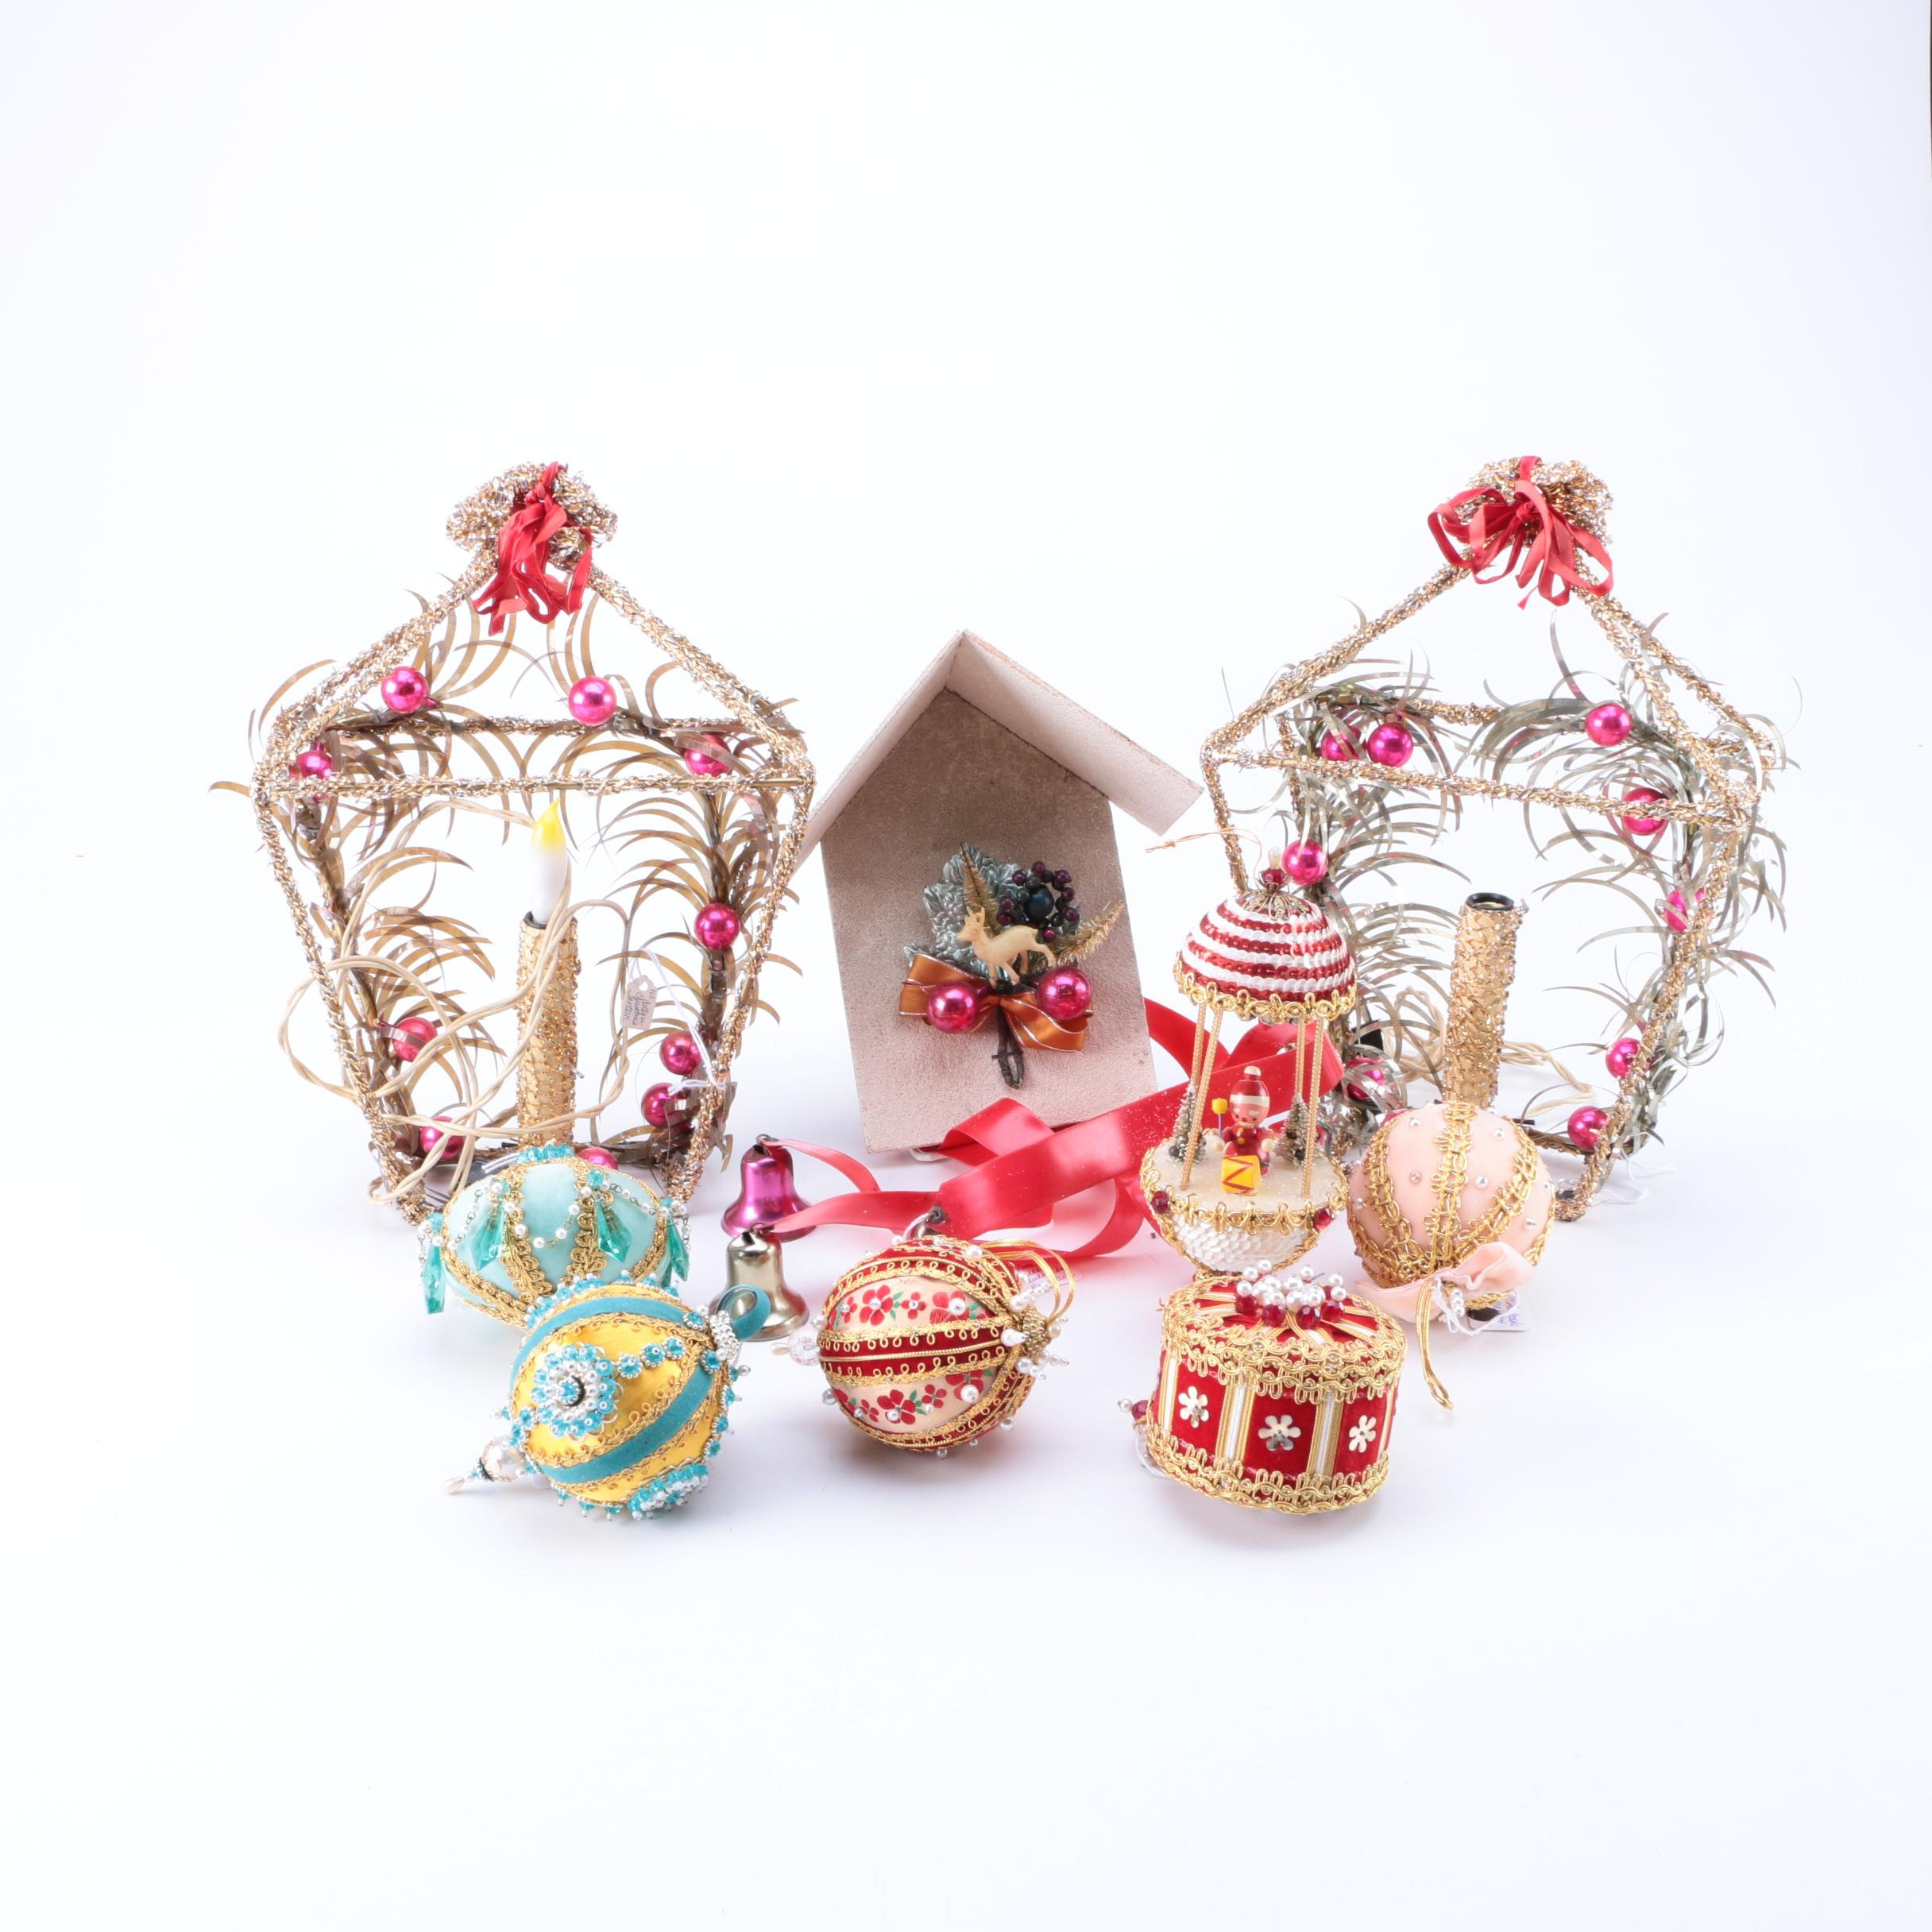 Vintage Christmas Ornaments and Other Decor